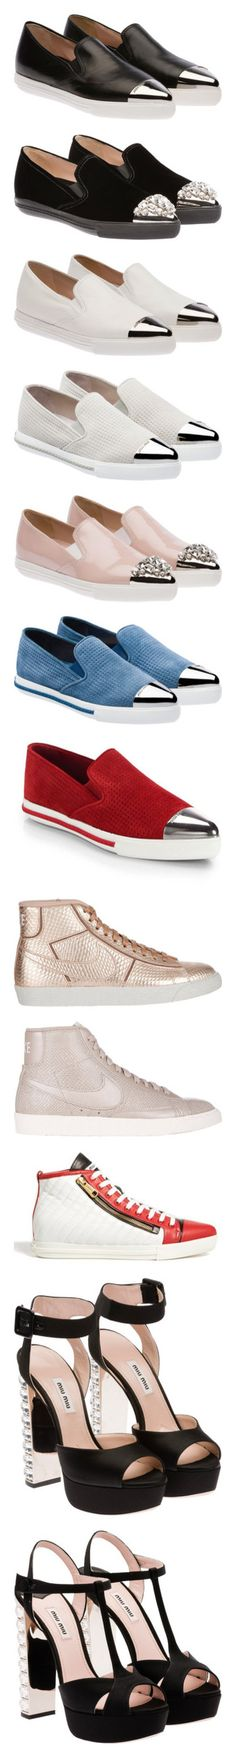 """miu miu shoes"" by madelineharlow ❤ liked on Polyvore featuring shoes, sneakers…"